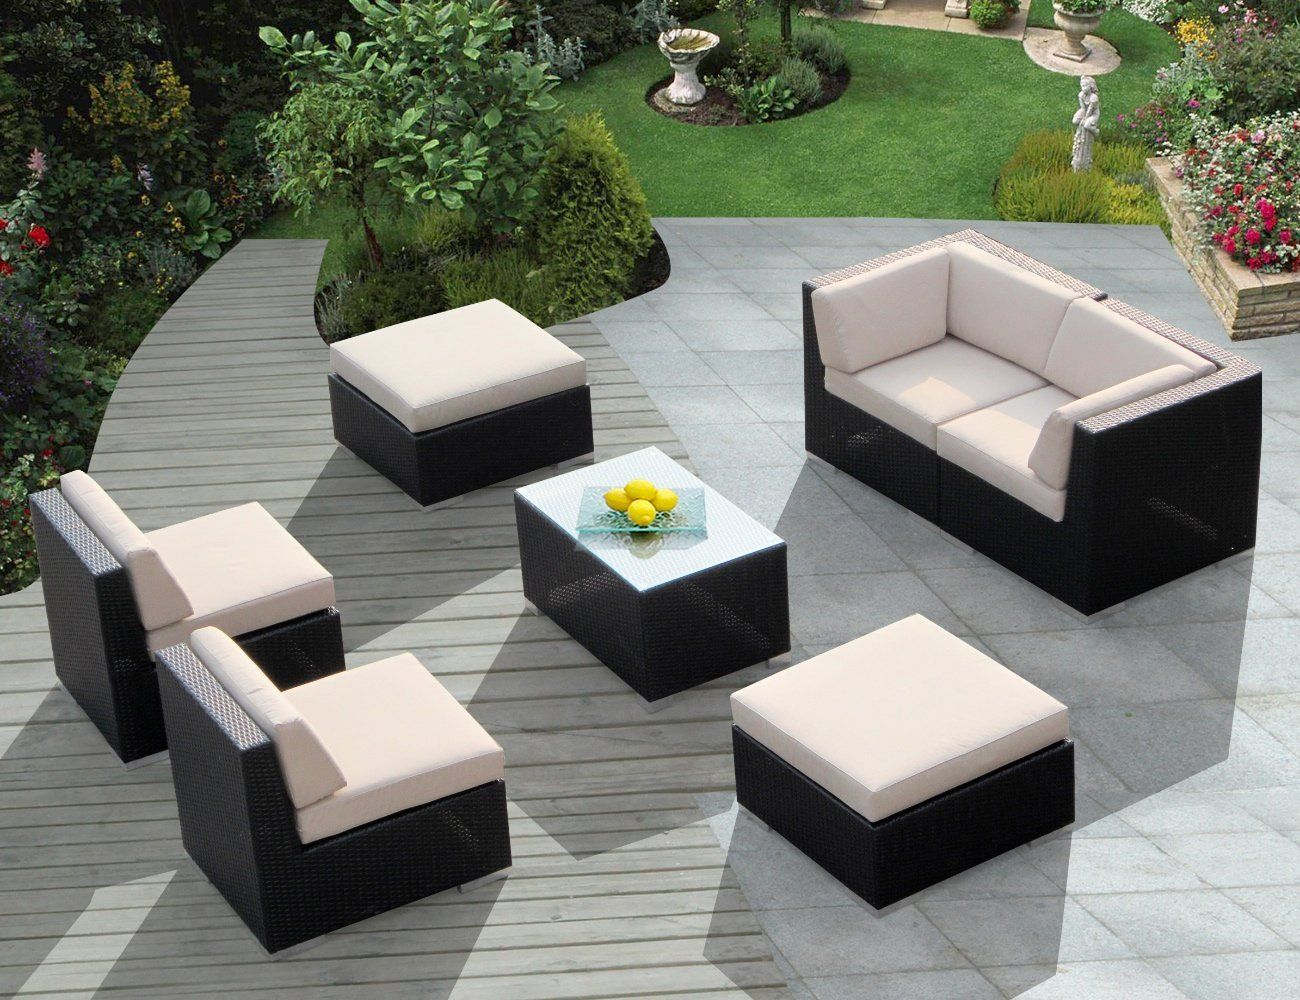 Genuine Ohana Outdoor Patio Wicker Furniture All Weather Gorgeous Couch Set  With BEIGE CUSHION    Patio Furniture Products    Search The Comparison  Board At ...